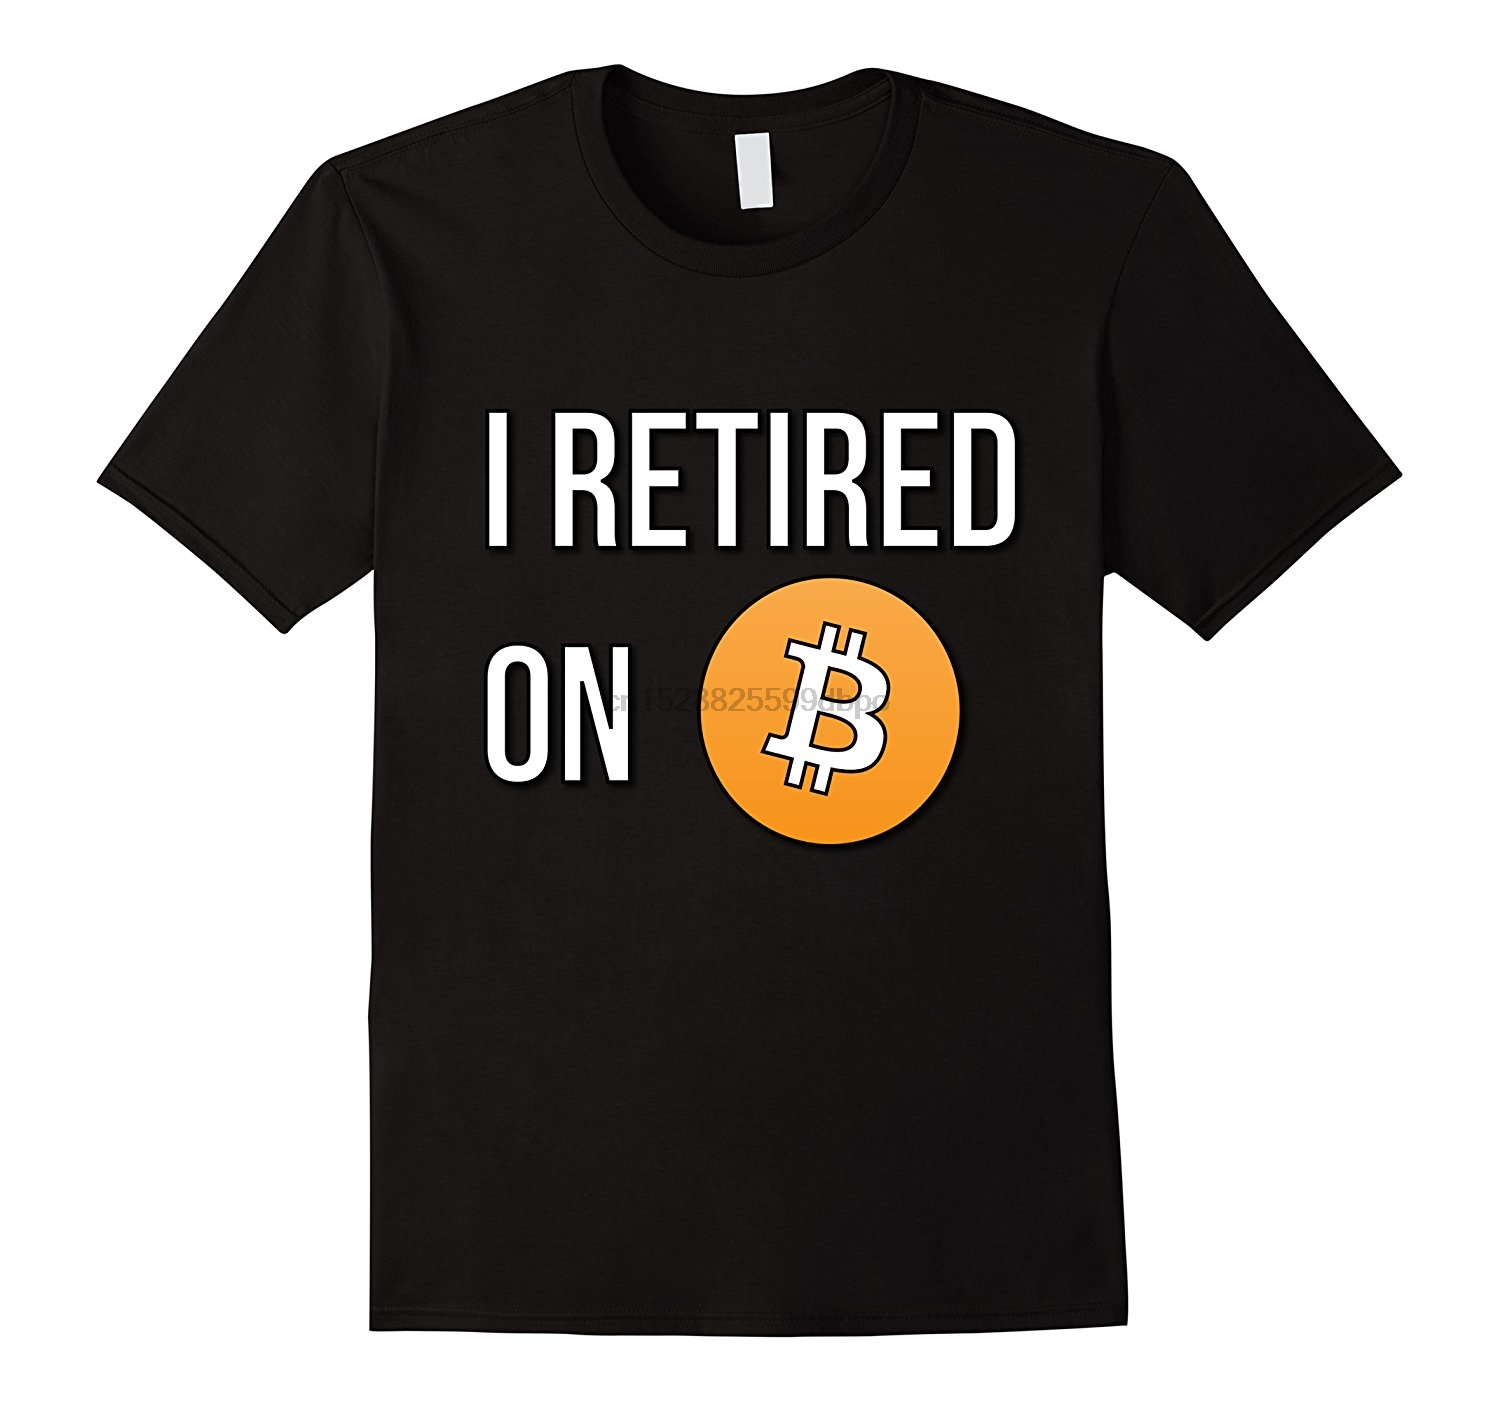 Design 2020 New New Style Tee Shirt I Retired On Bitcoin T-Shirt Fun Investing Retirement Homme 100% Cotton T-Shirt Unisex image